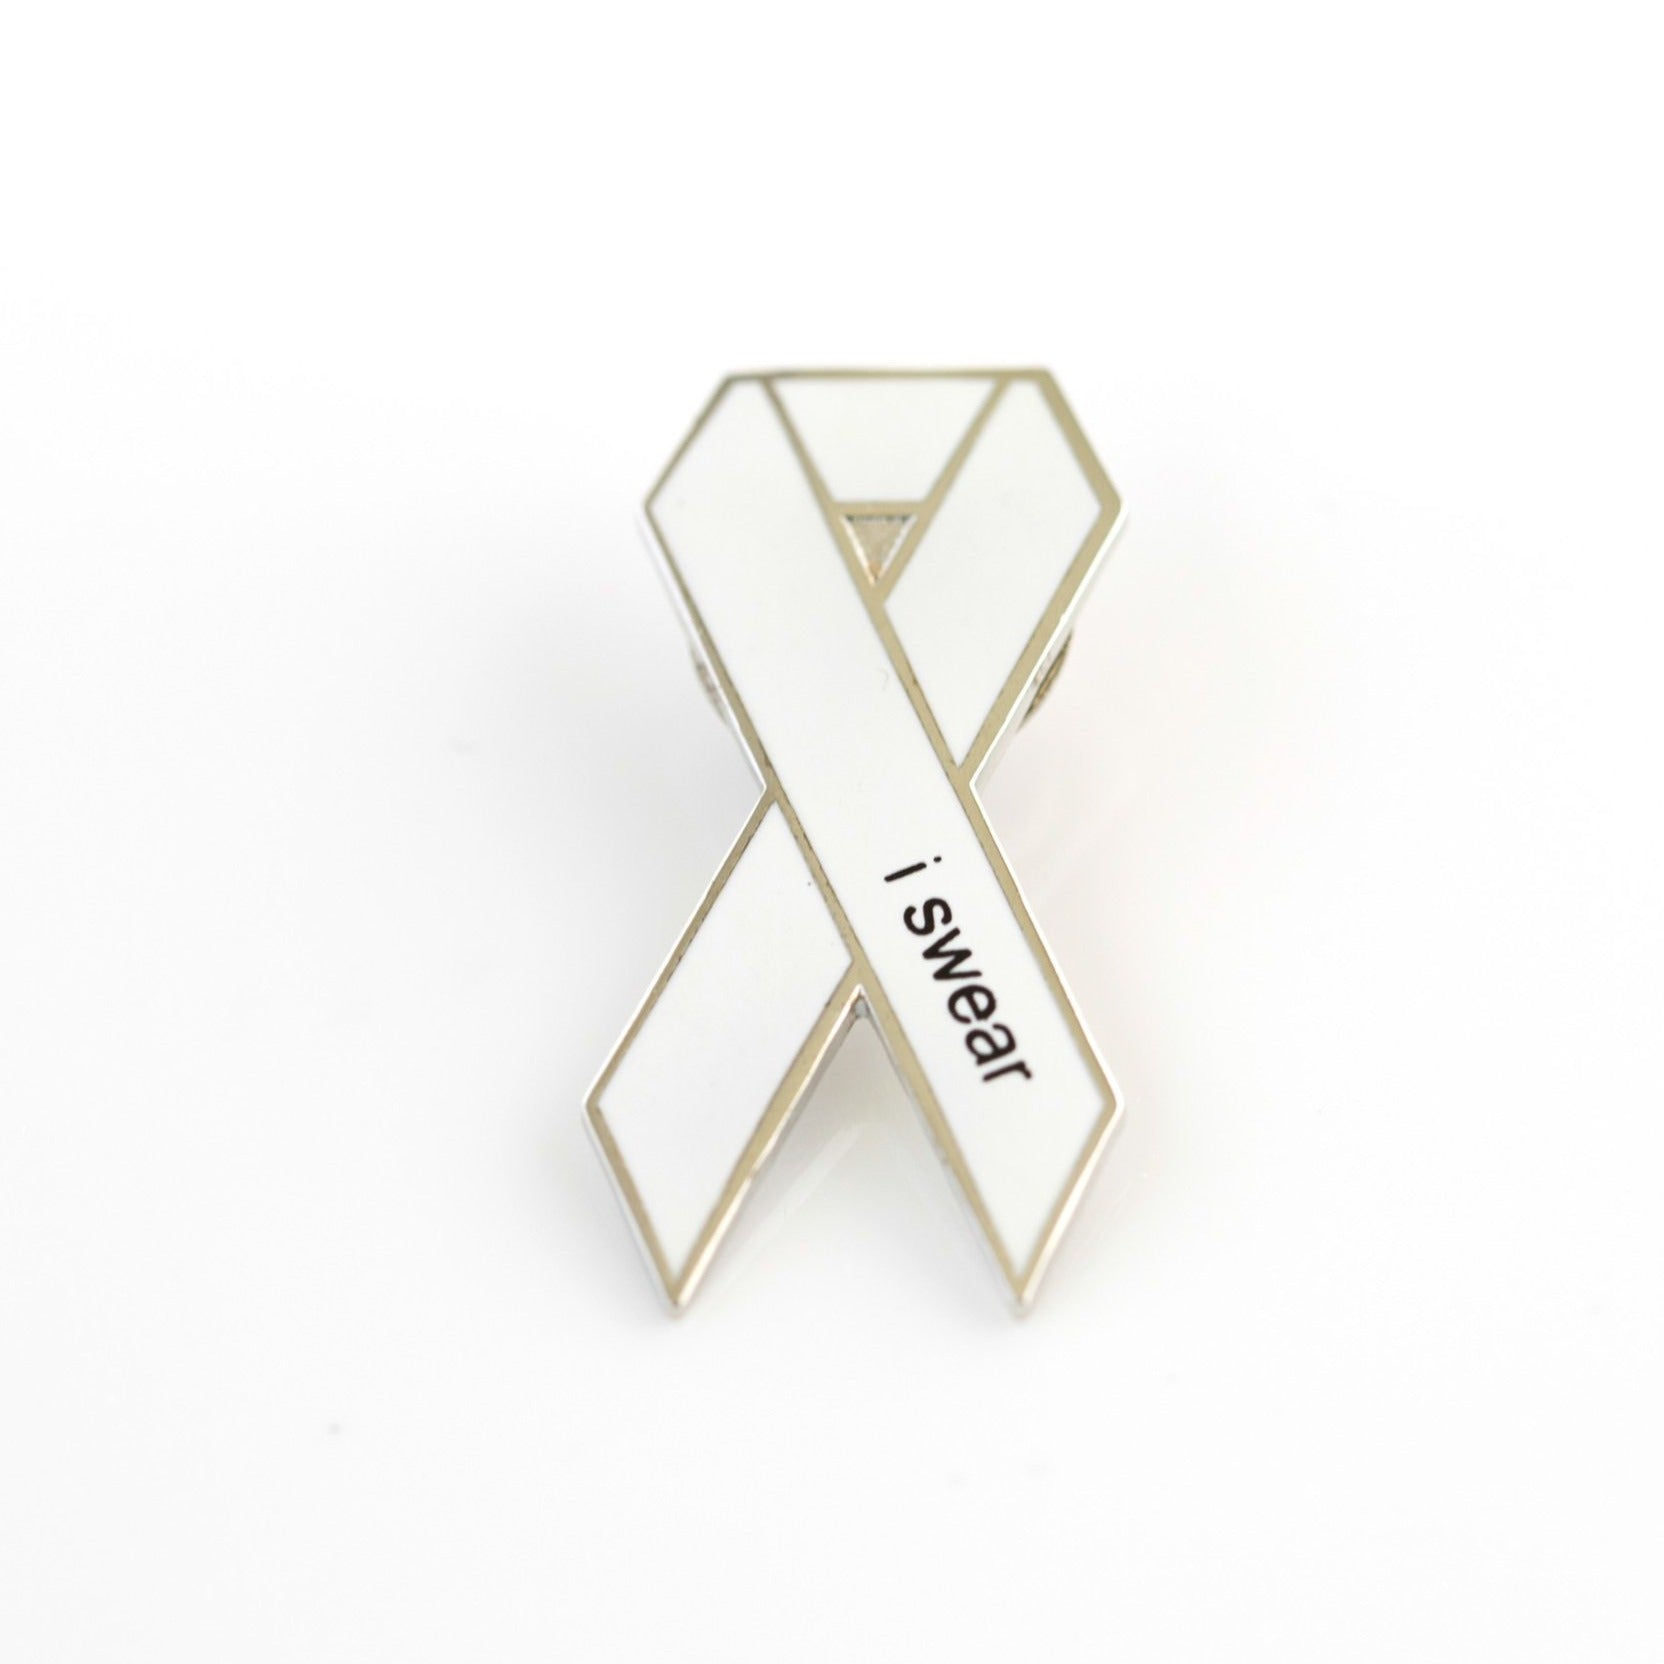 Enamel Pin - double backing